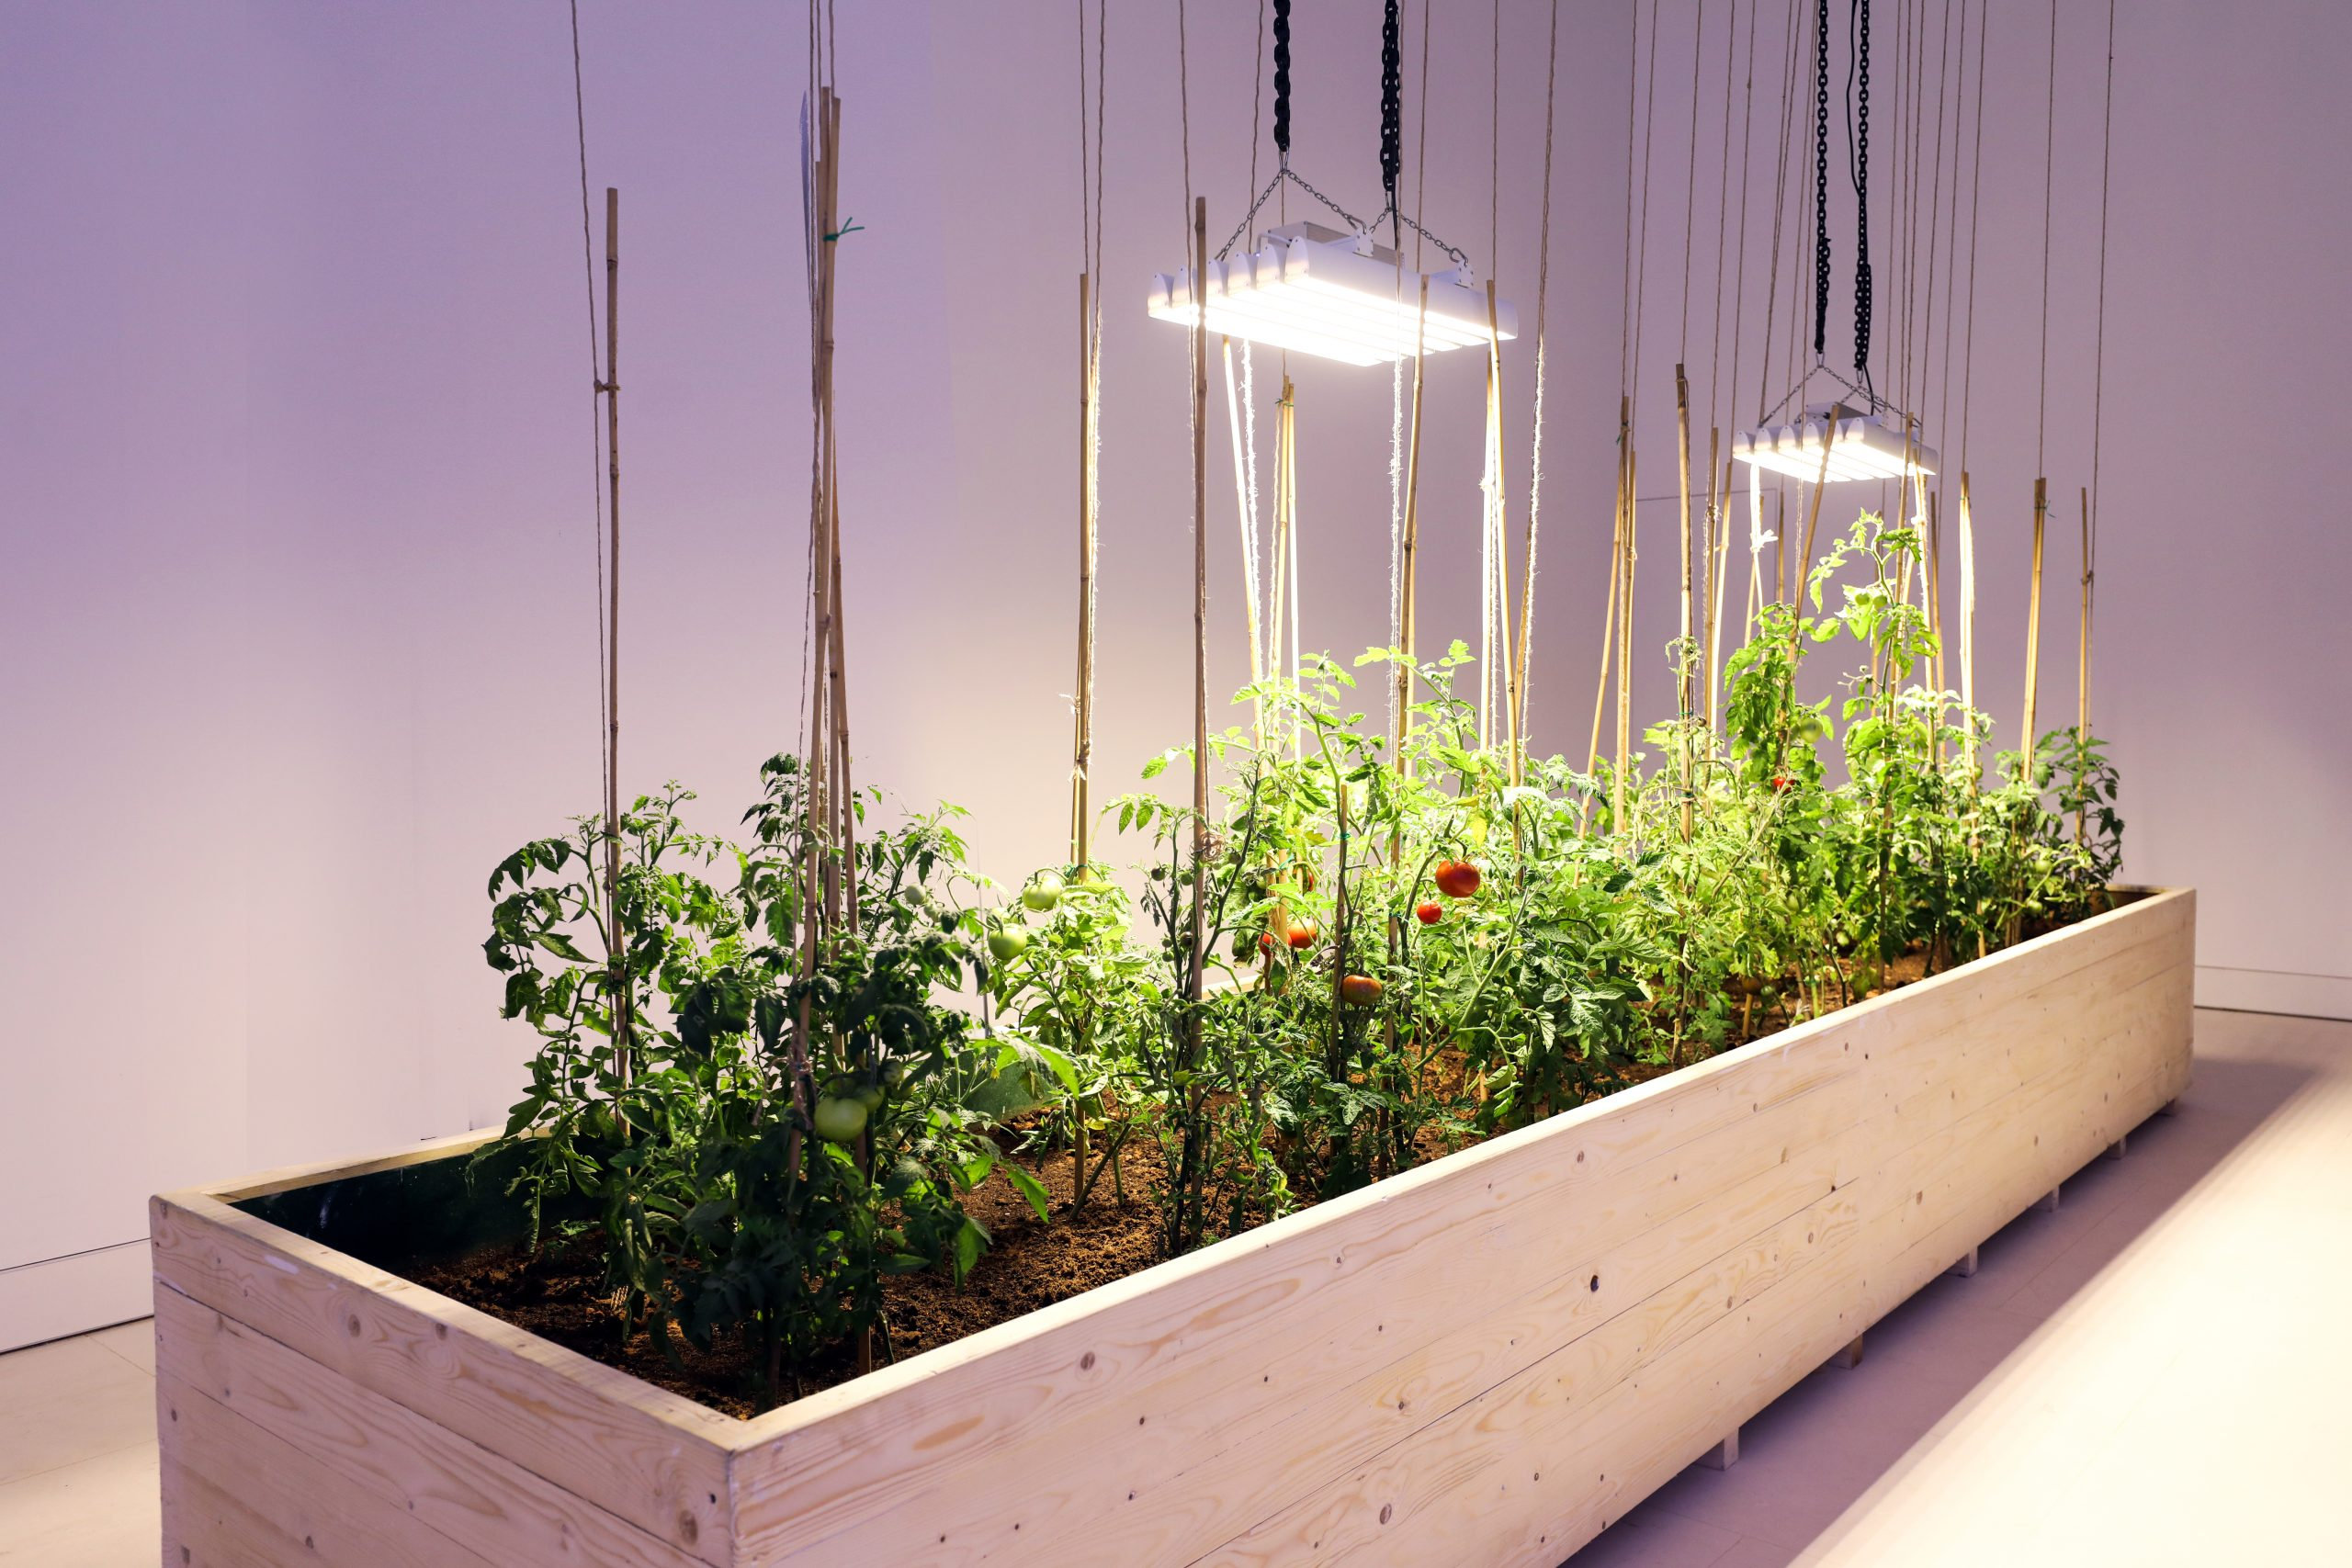 Sarah Abu Abdallah, Trees speaking with each other, 2019, Long container with soil and tomato plants illuminated from above. 60 x 110 x 500 cm.